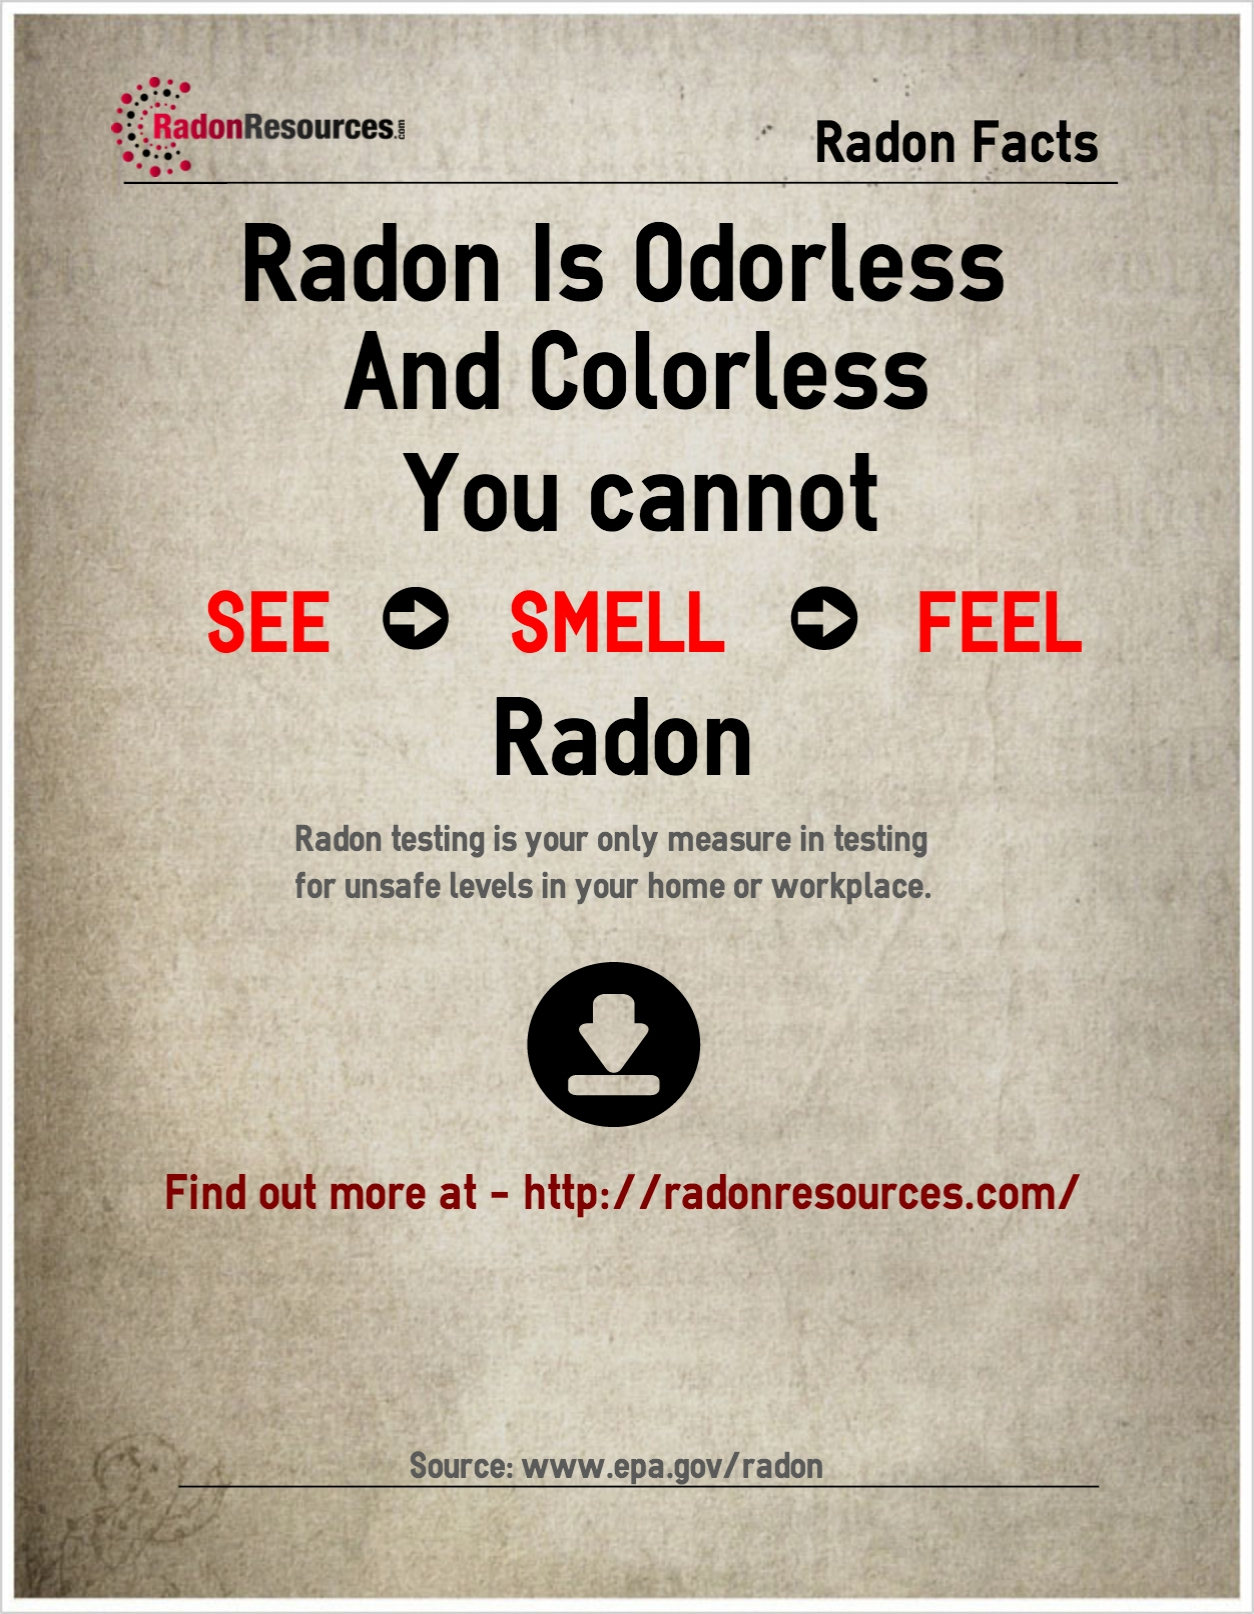 Radon is odorless and colorless. You cannon see, smell or feel radon gas